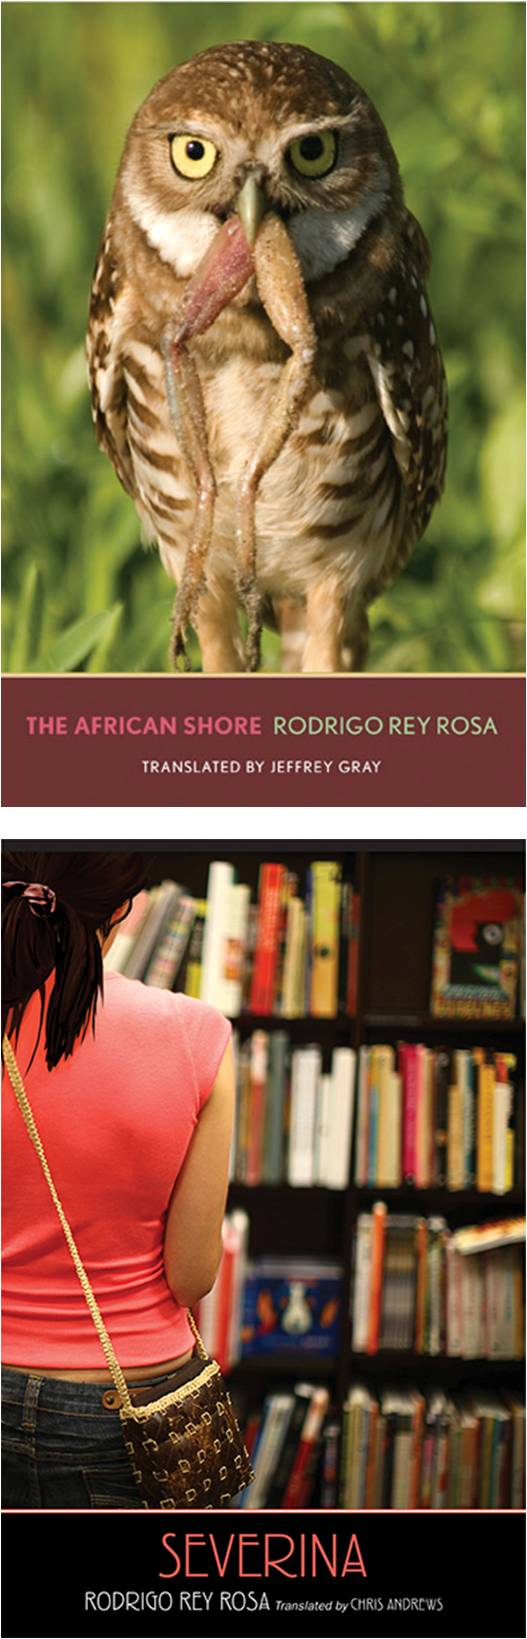 The African Shore by Rodrigo Rey Rosa Translated by Jeffrey Gray (Yale University Press, 2013) Severina by Rodrigo Rey Rosa Translated by Chris Andrews (Yale University Press, 2014) Reviewed by Jennifer Kurdyla